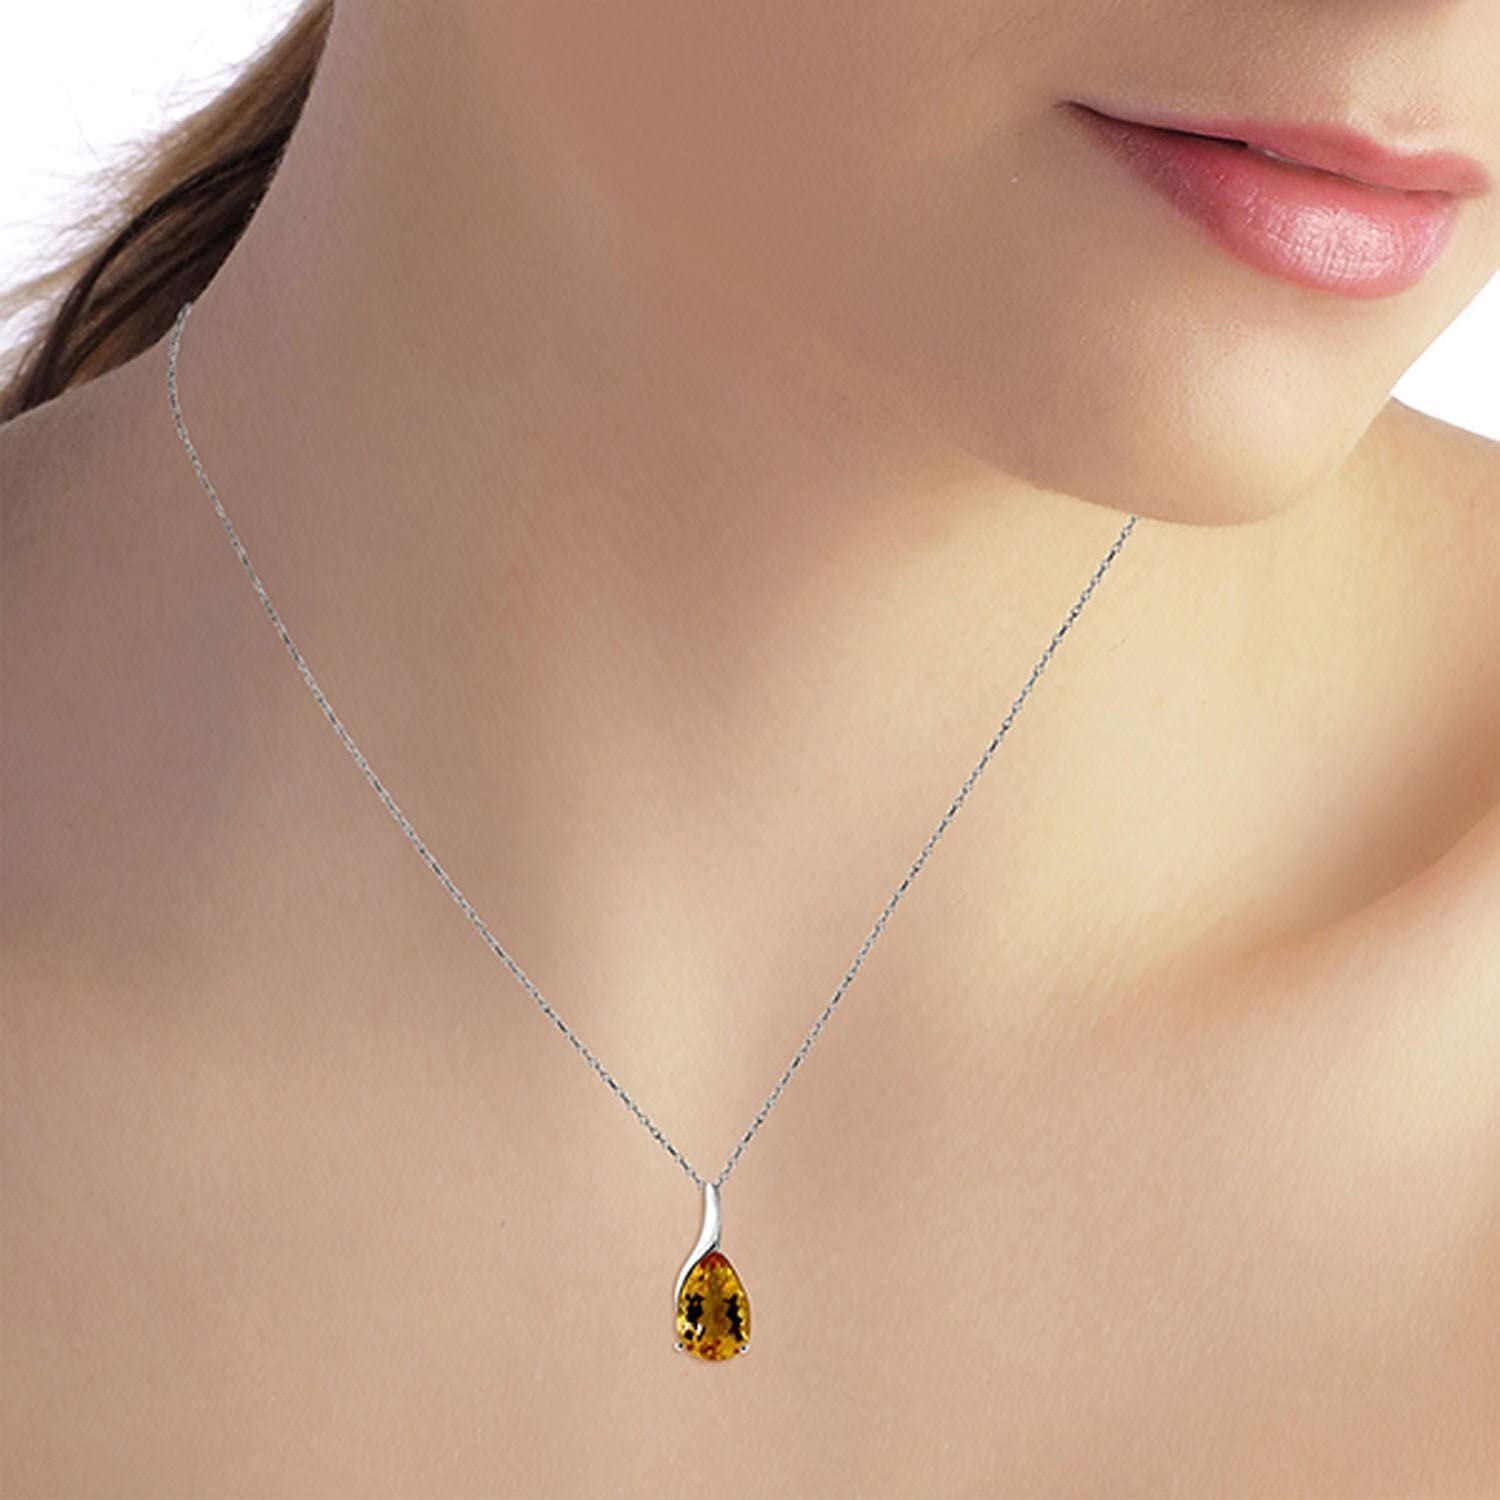 ALARRI 5 Carat 14K Solid White Gold Do No Harm Citrine Necklace with 18 Inch Chain Length